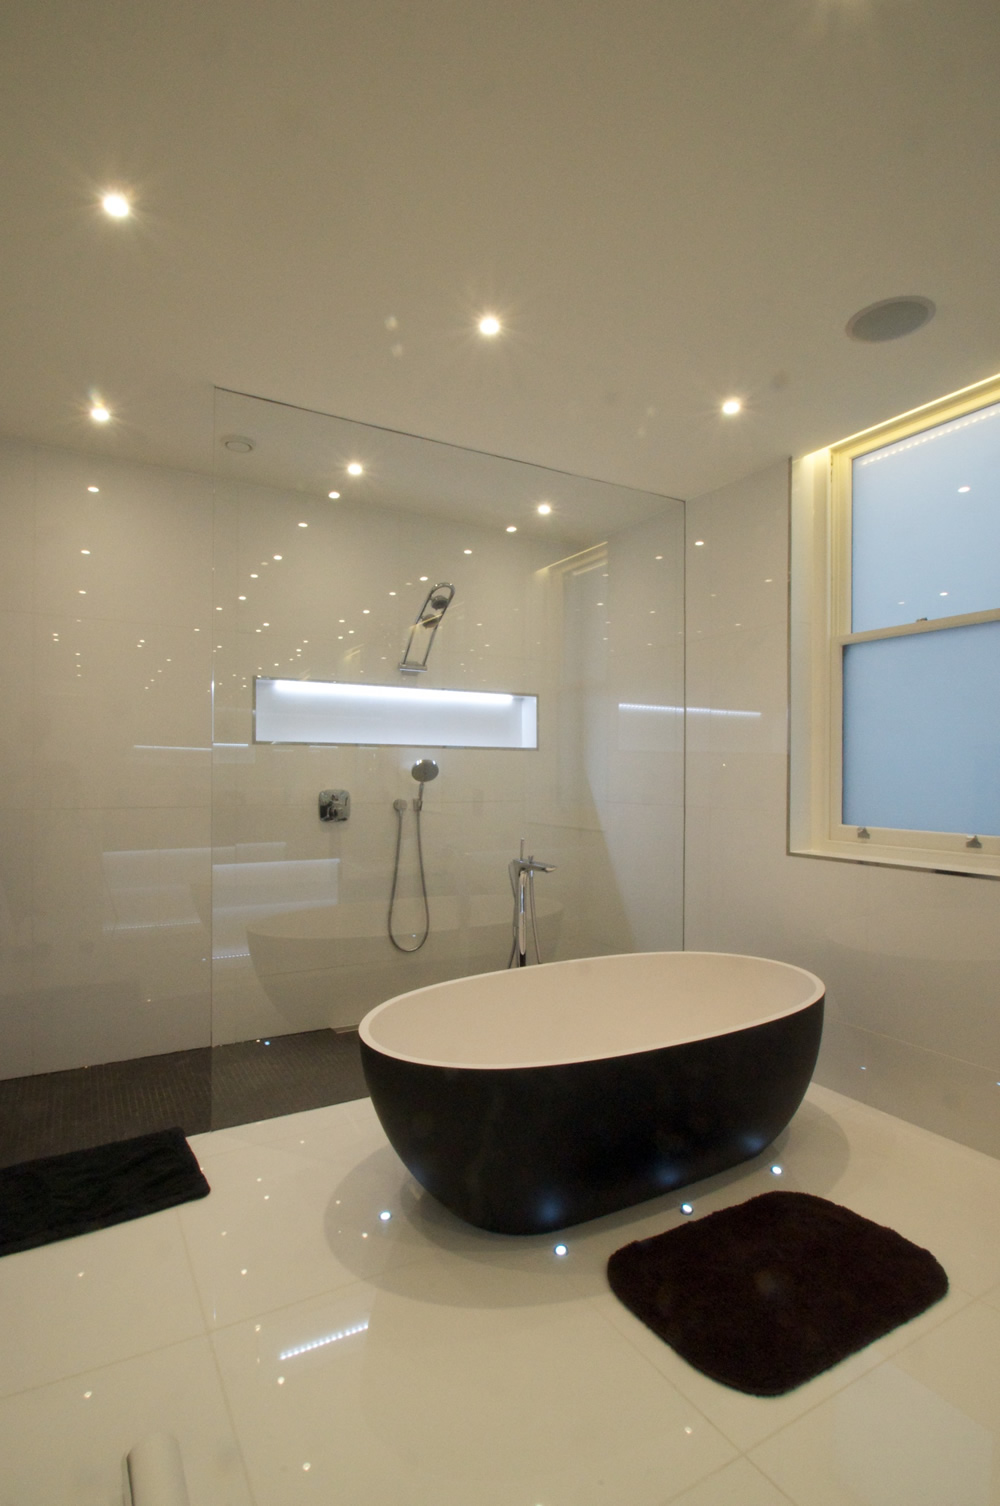 Wet room design gallery design ideas pictures ccl - Bath shower room ...